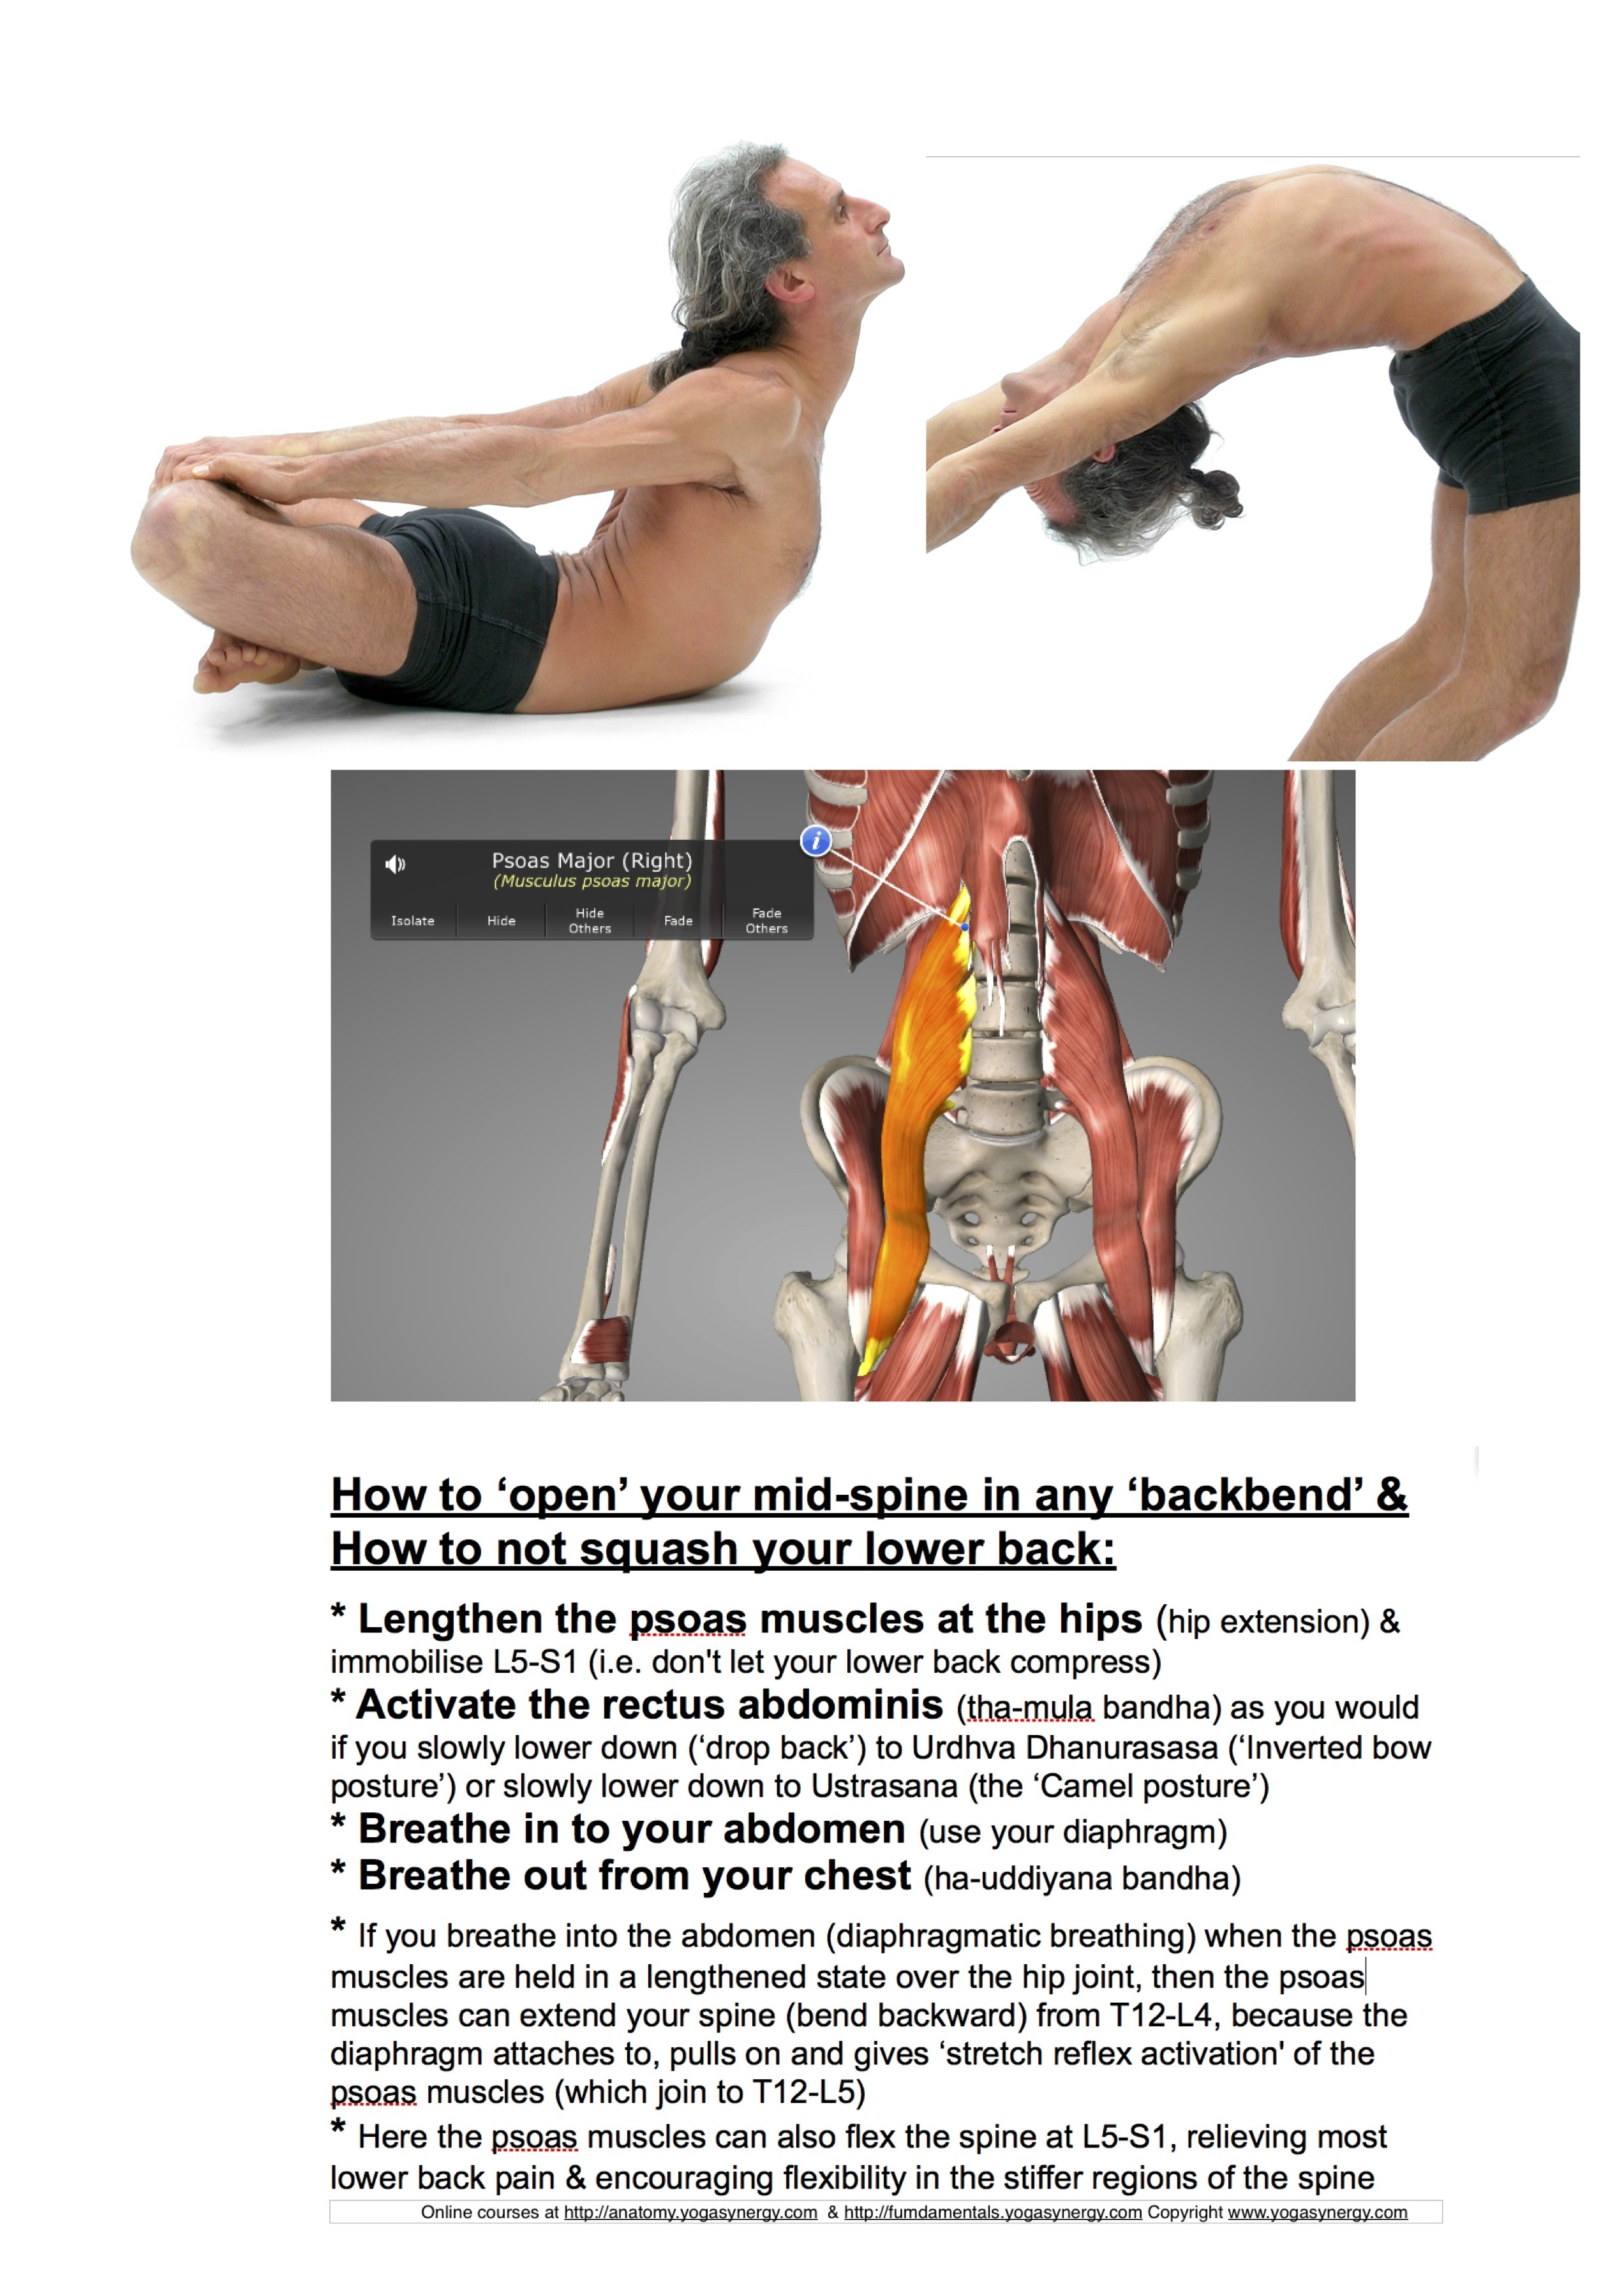 How To Relieve Back Pain And Bend Backwards Without Hurting Your